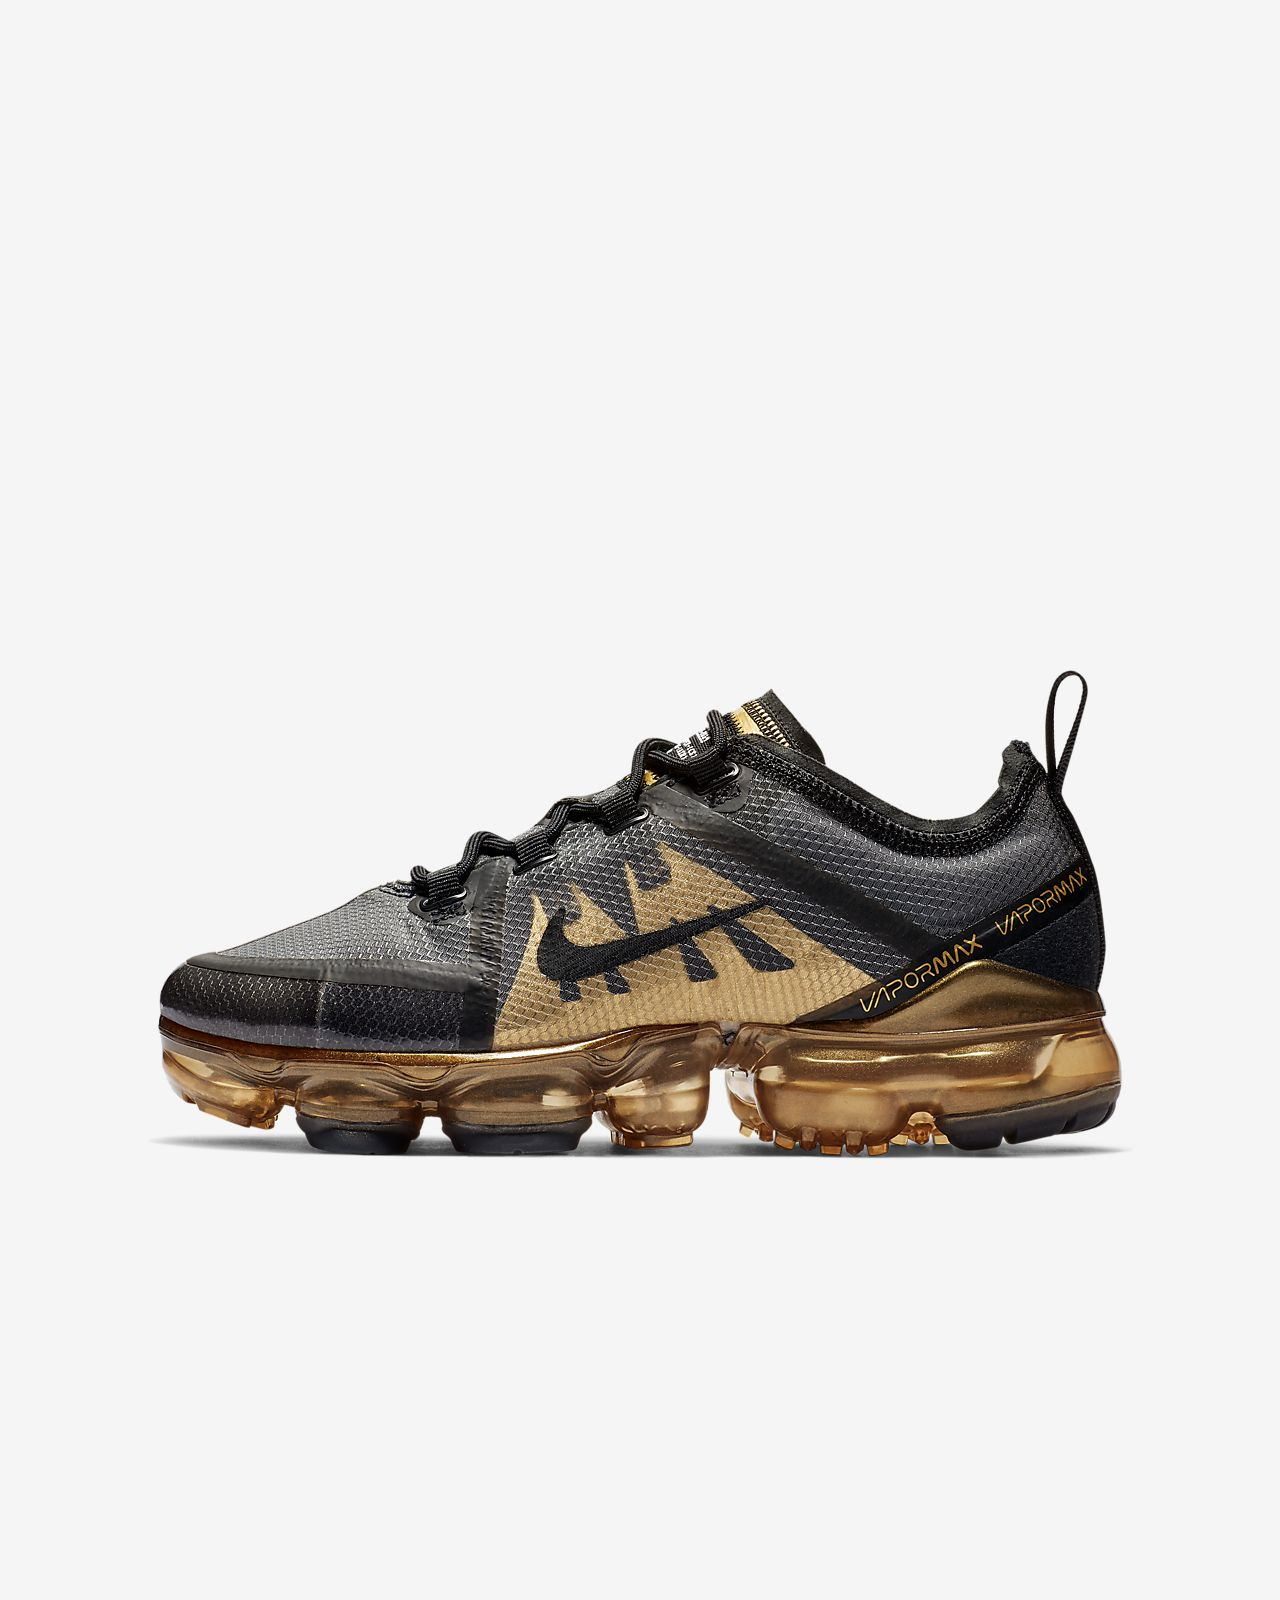 competitive price 59826 9239a ... Nike Air VaporMax 2019 sko til store barn